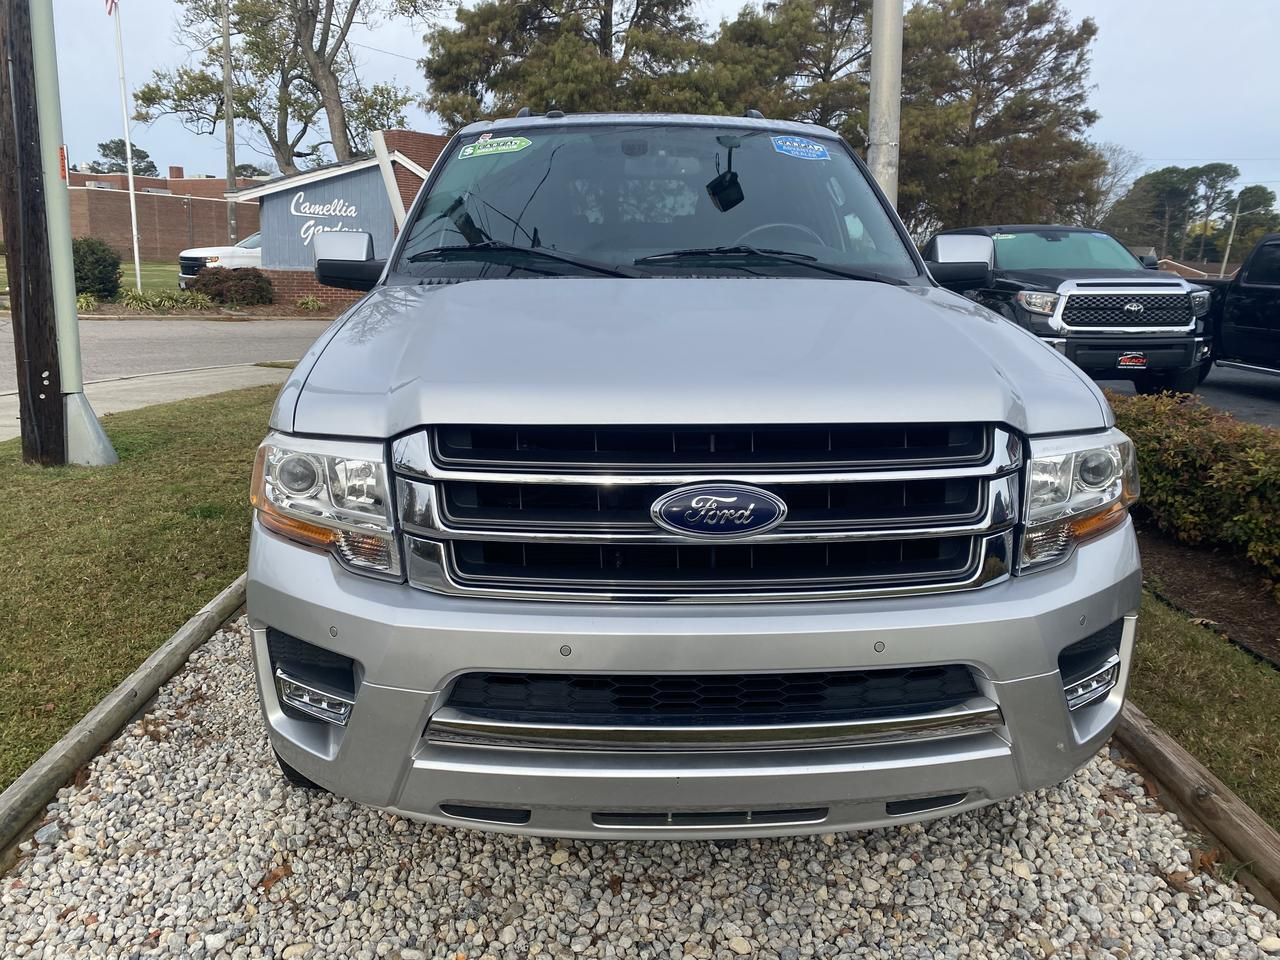 2016 FORD EXPEDITION EL LIMITED, WARRANTY, LEATHER, NAV, HEATED/COOLED SEATS, 3RD ROW, BLUETOOTH, BACKUP CAM, CLEAN! Norfolk VA